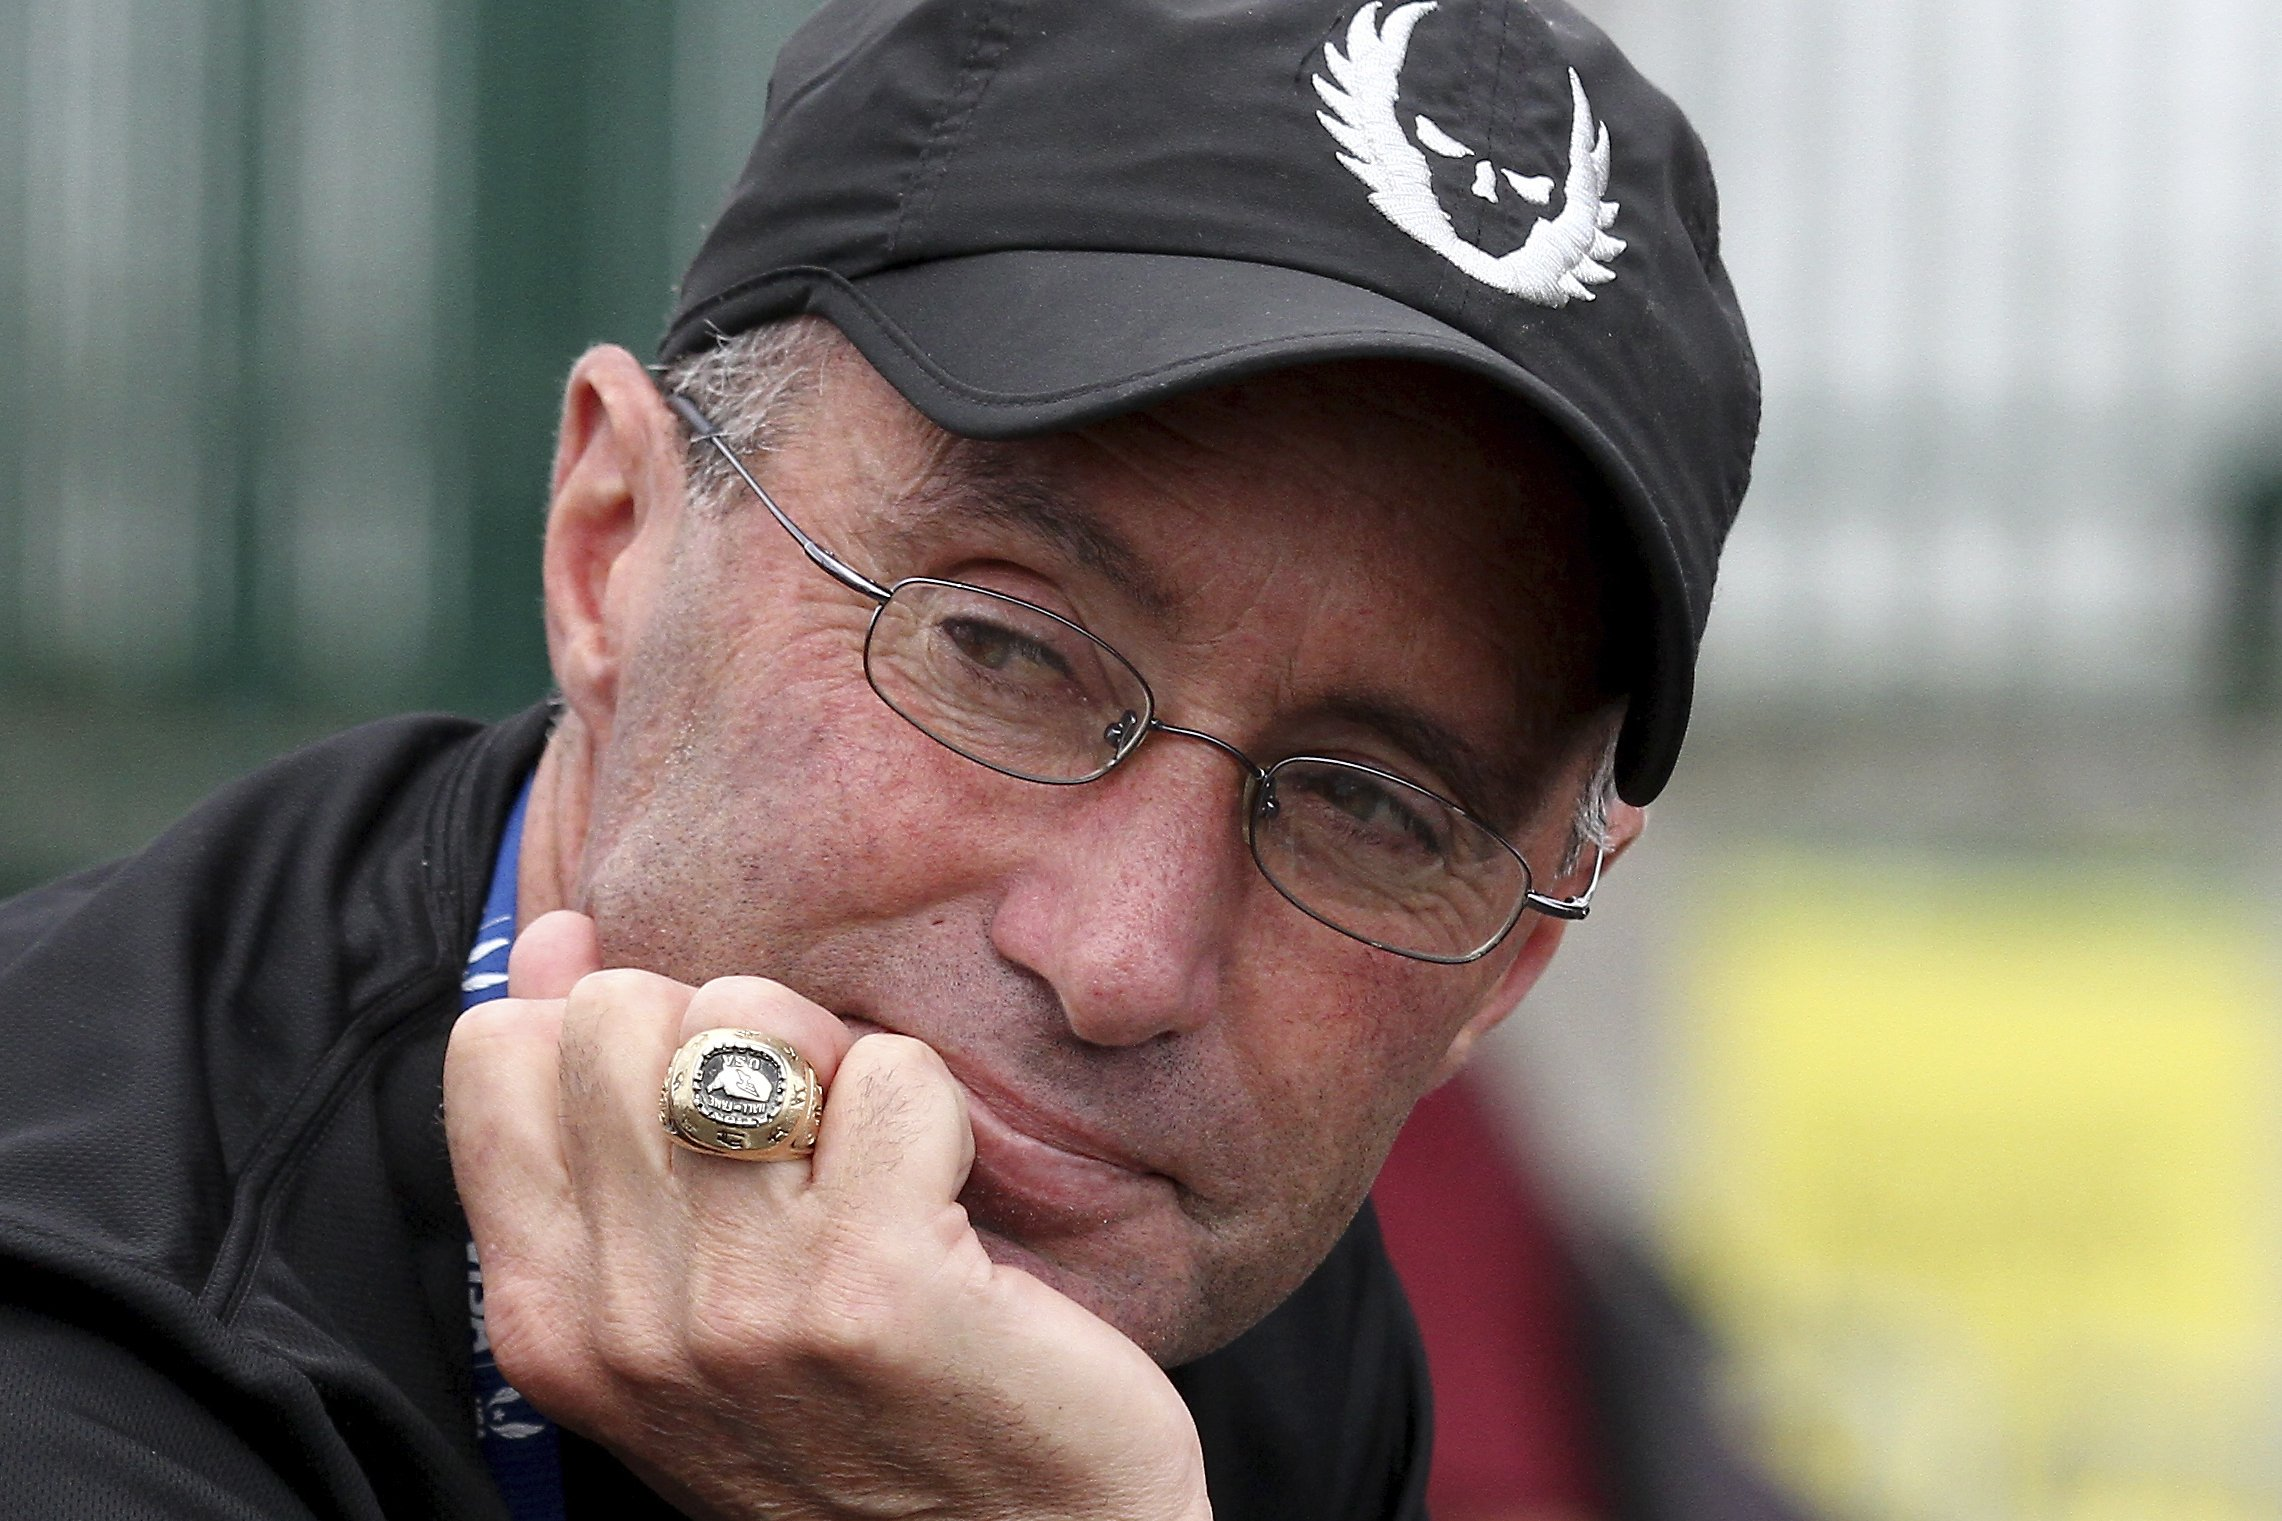 Track coach Alberto Salazar files doping case appeal at CAS